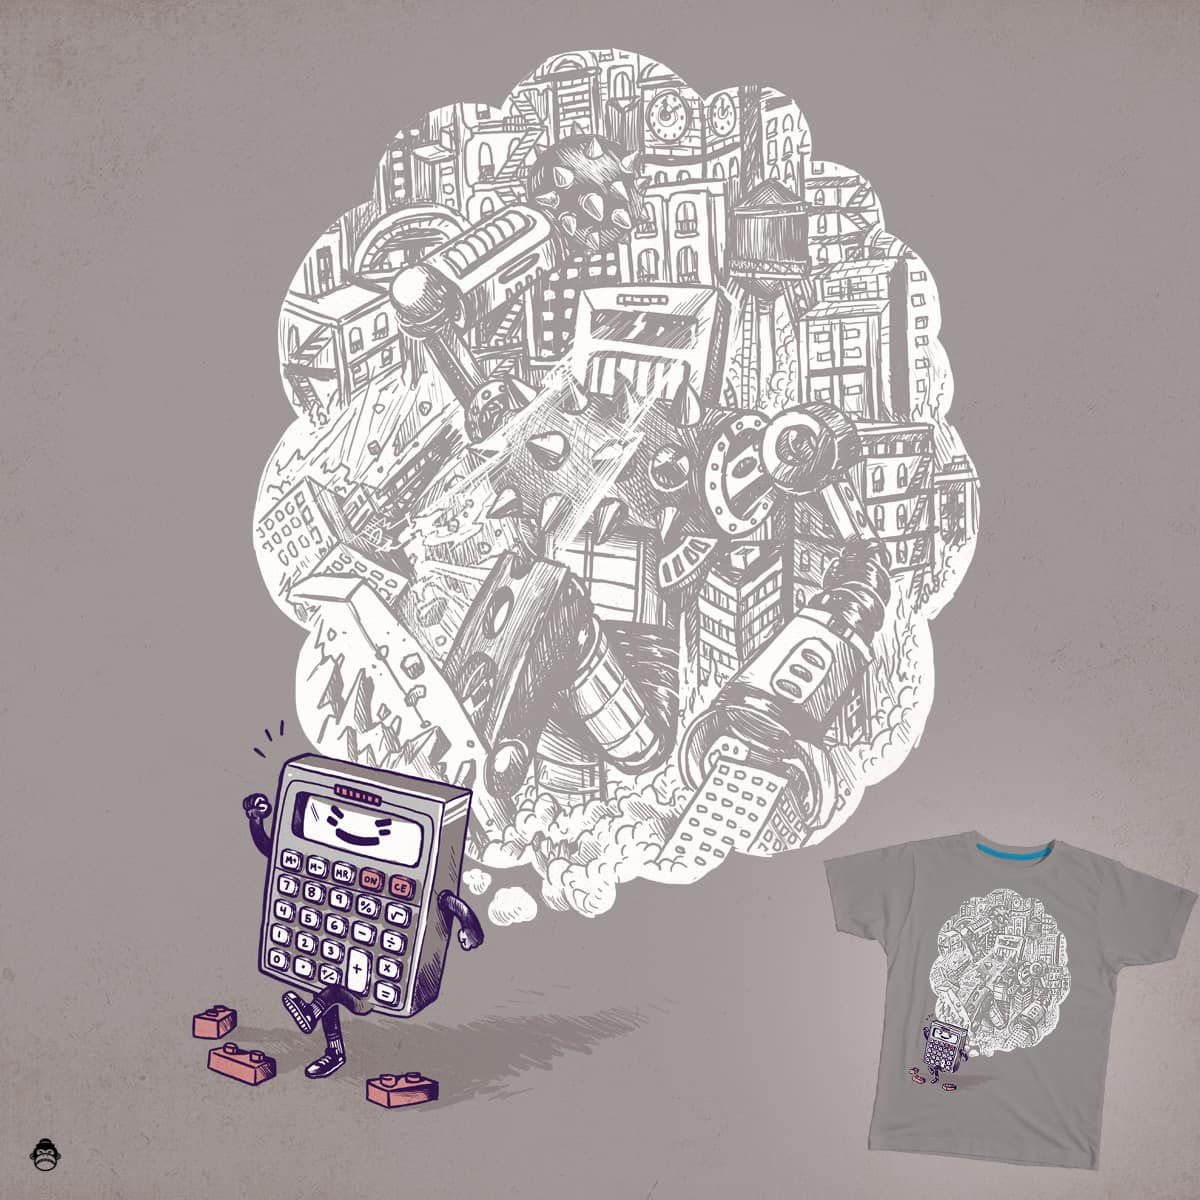 Big Dreams by alexmdc on Threadless